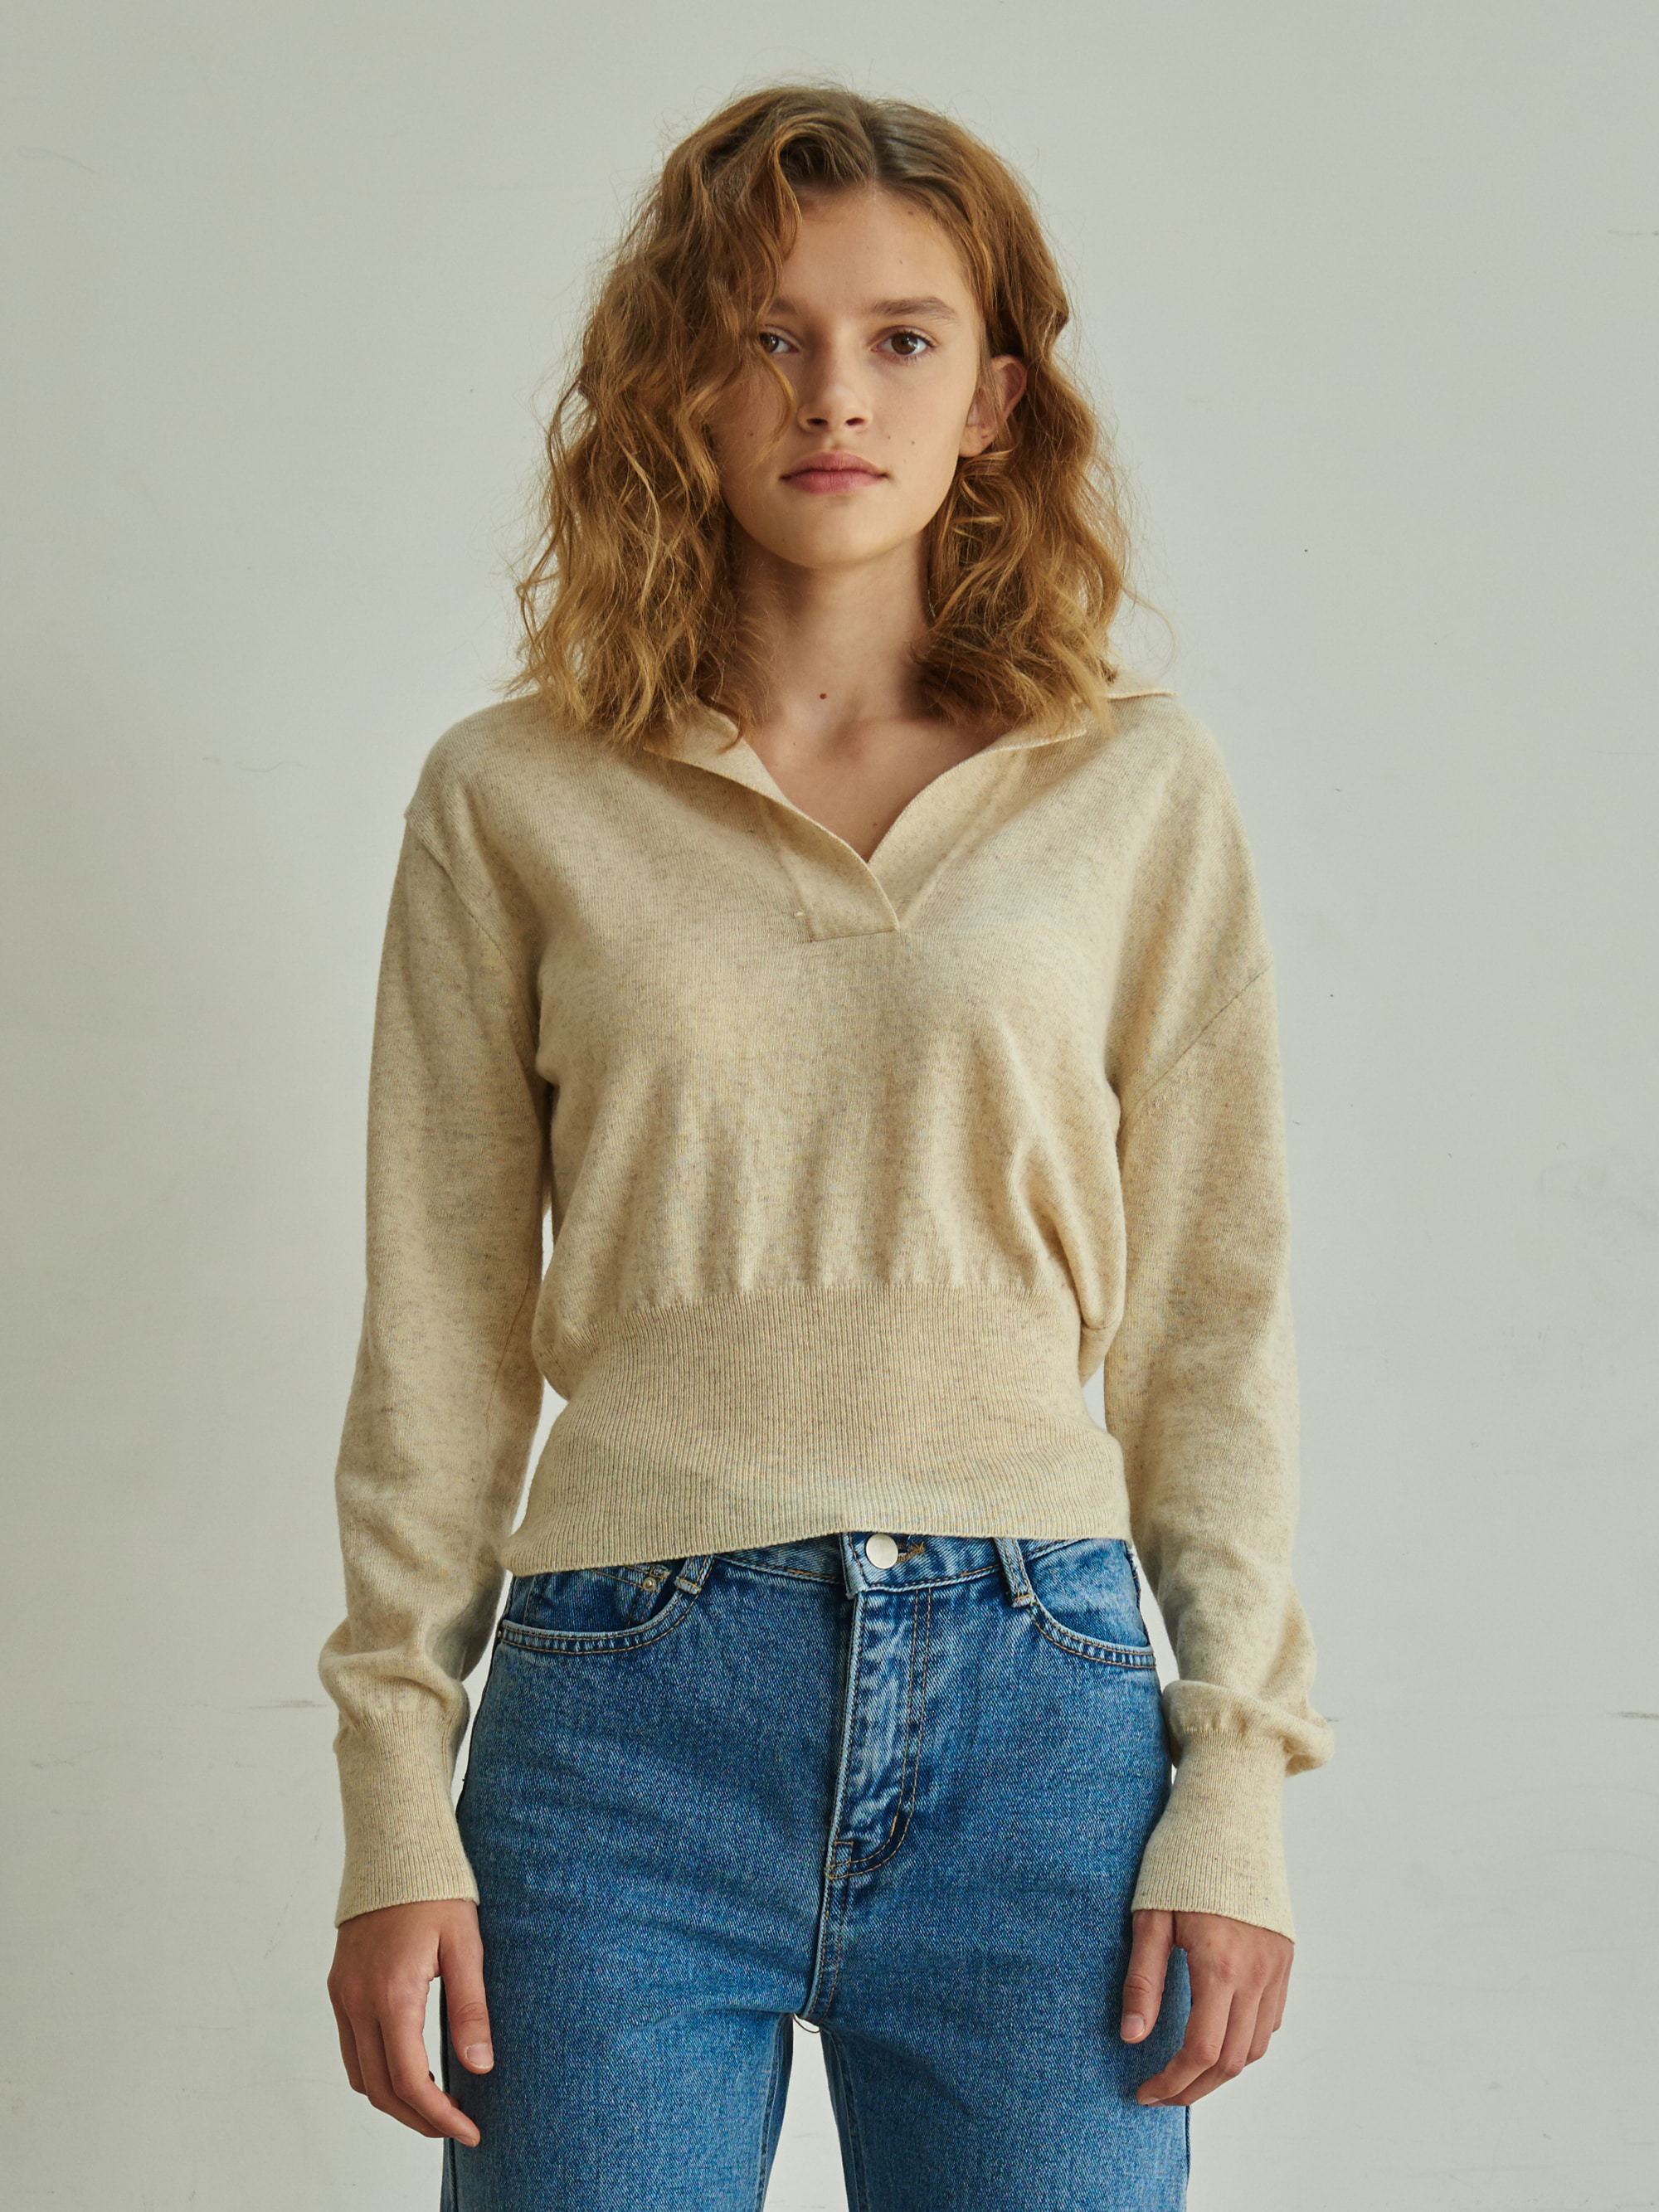 COLLARED KNIT TOP (BEIGE)